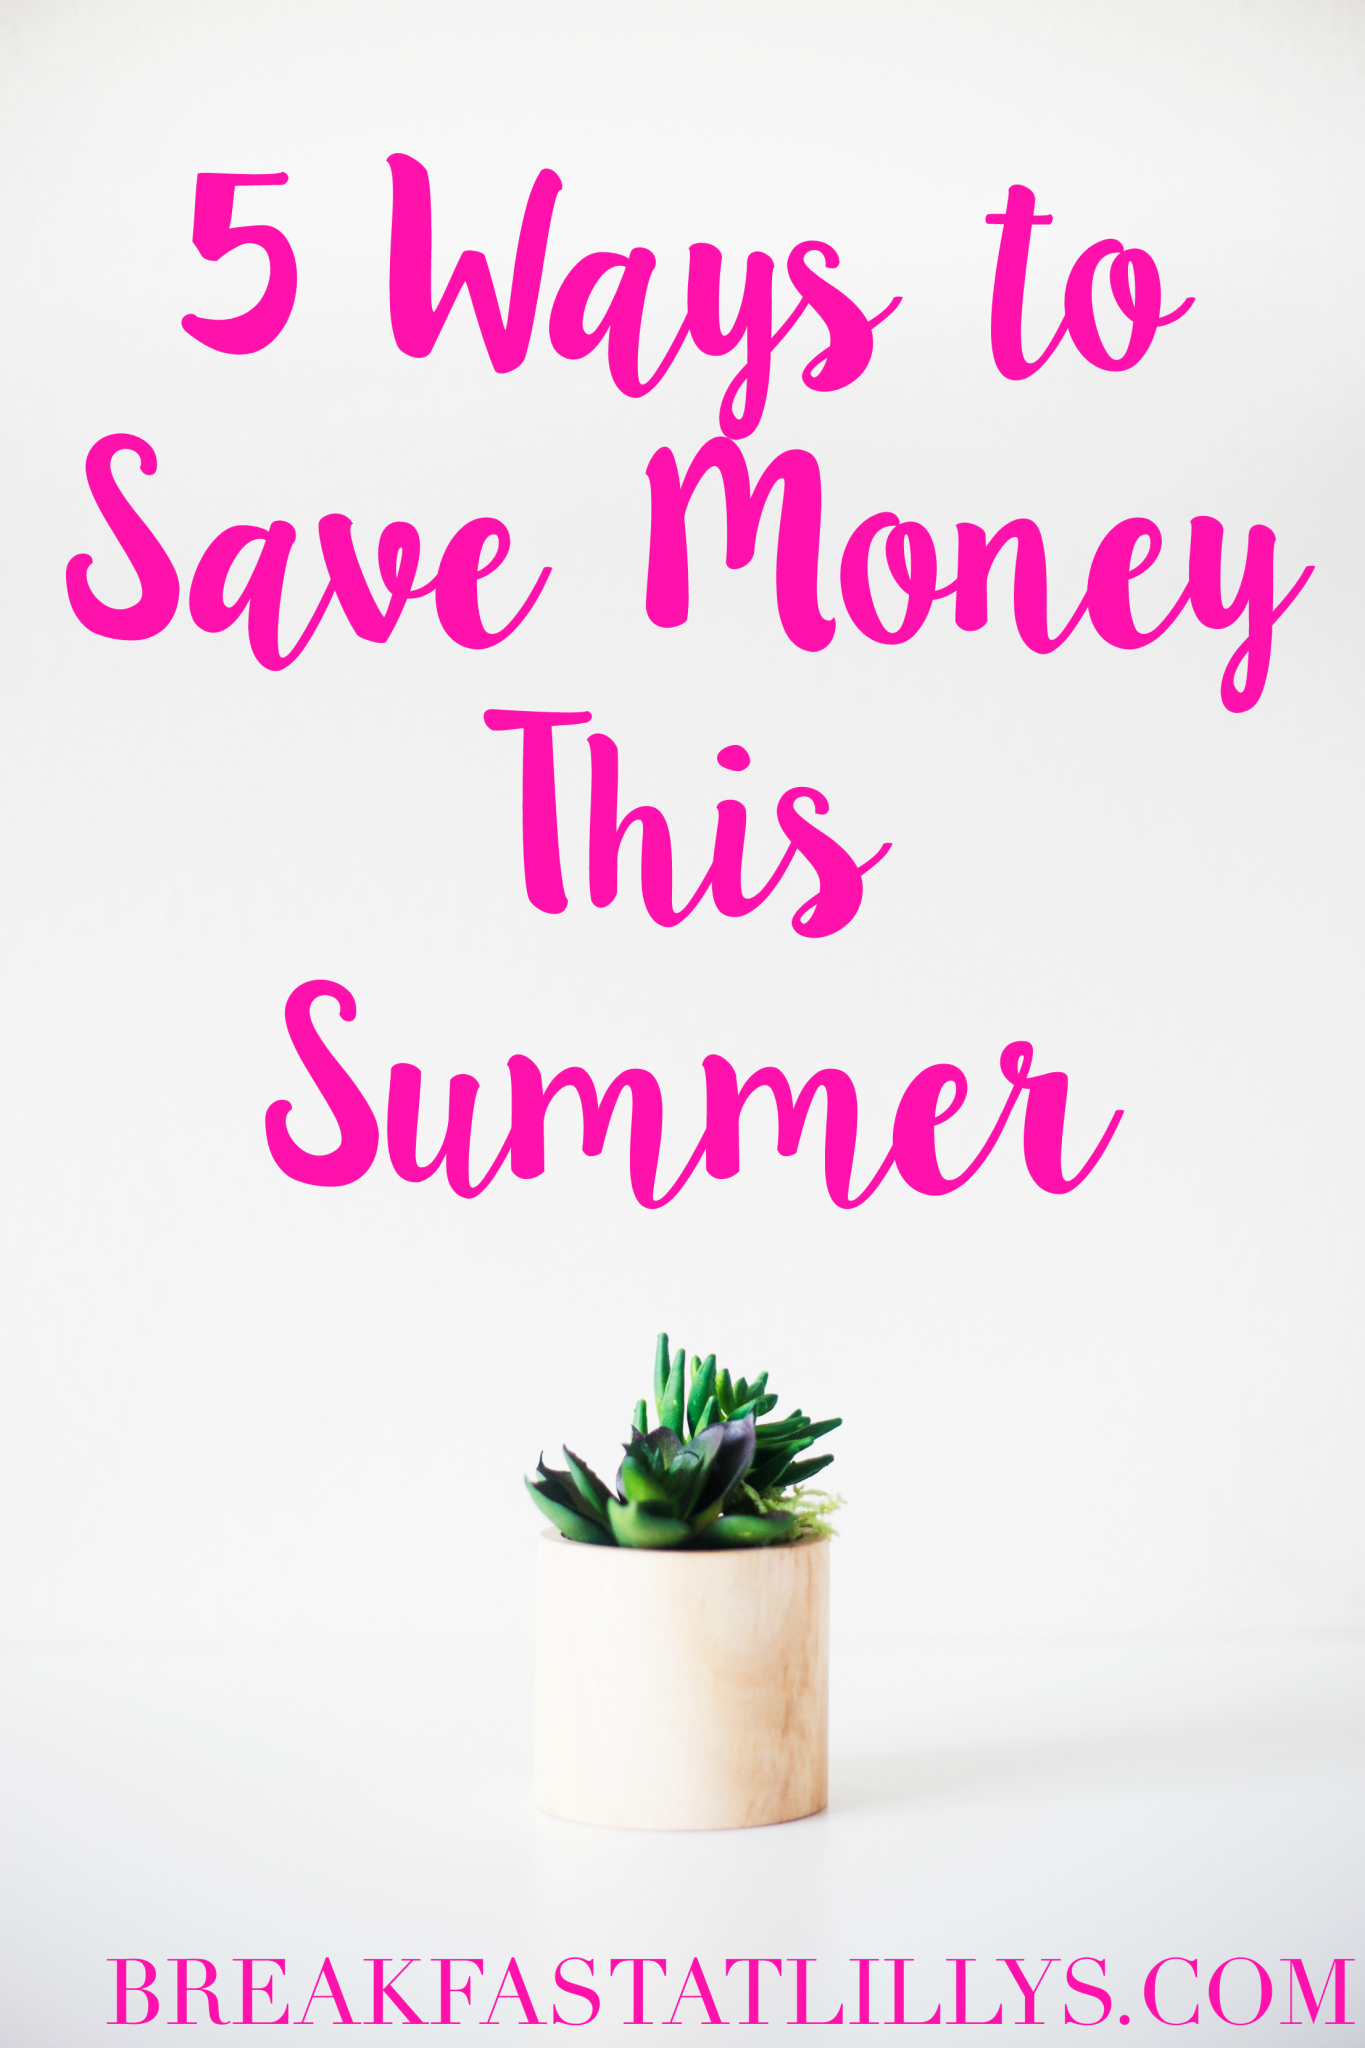 5 Ways to Save Money This Summer